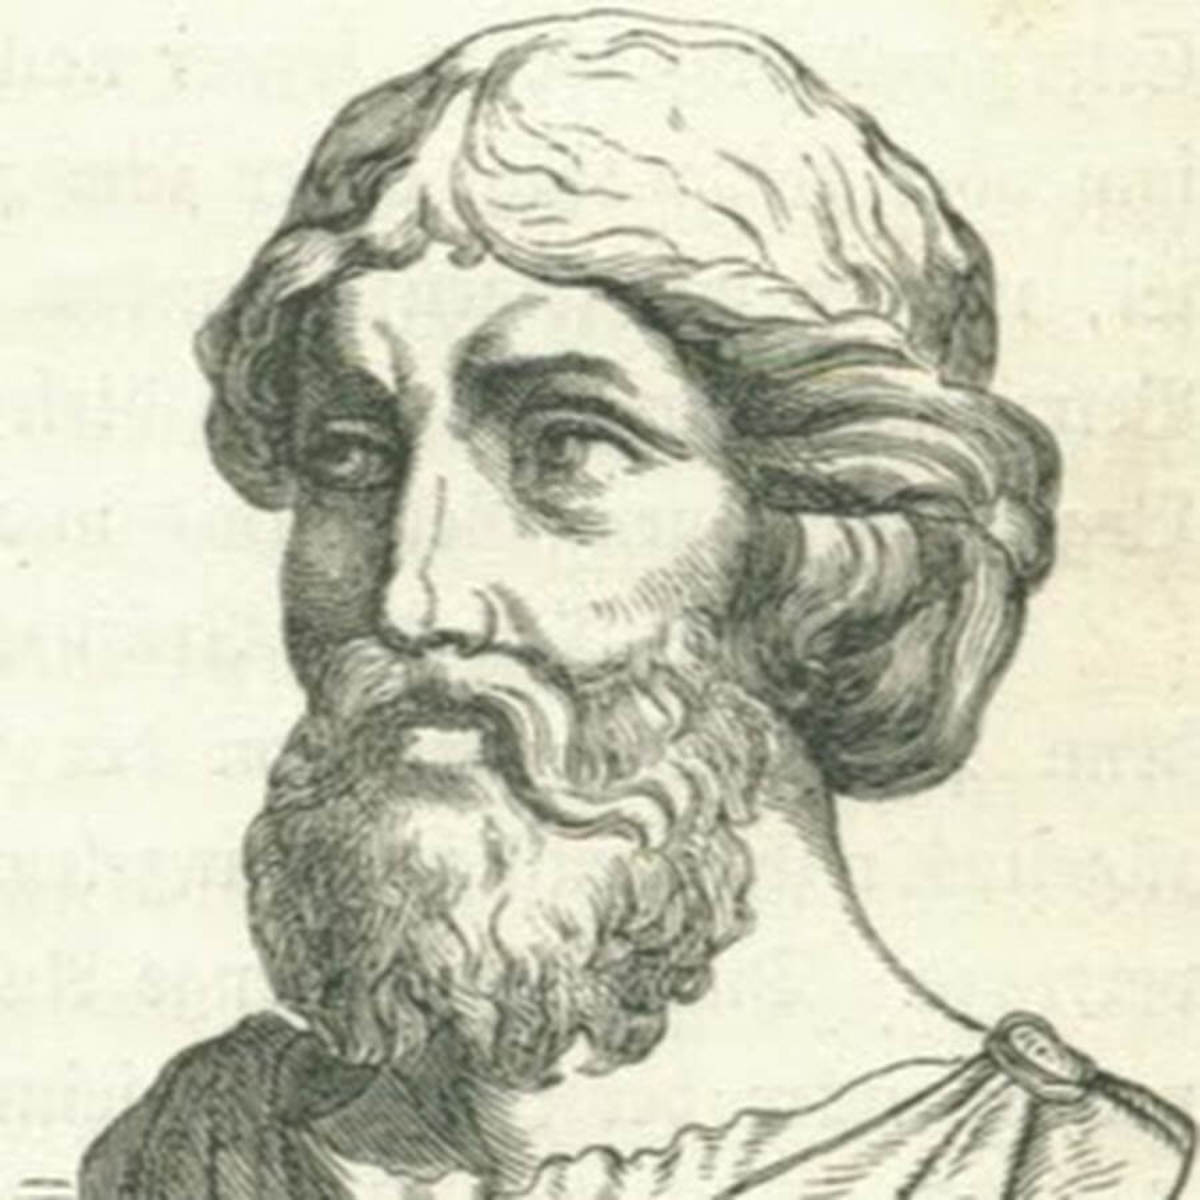 Aristarchus the Forgotten Genius